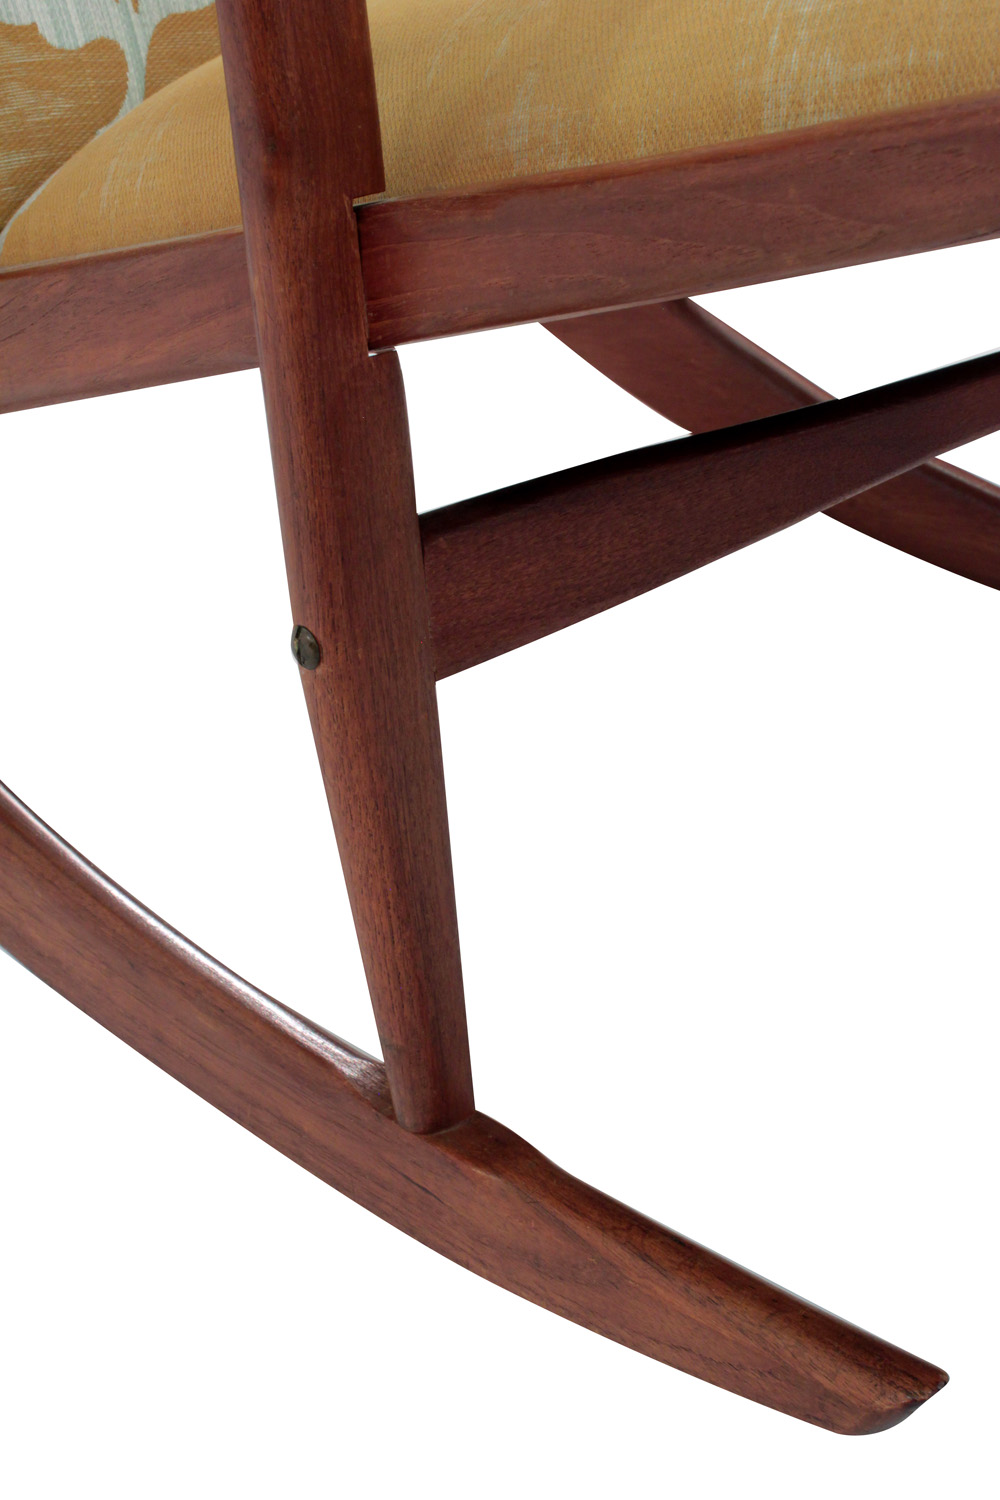 Kubus 28 teak by Georg Jensen rocker2 detail3 hires.jpg